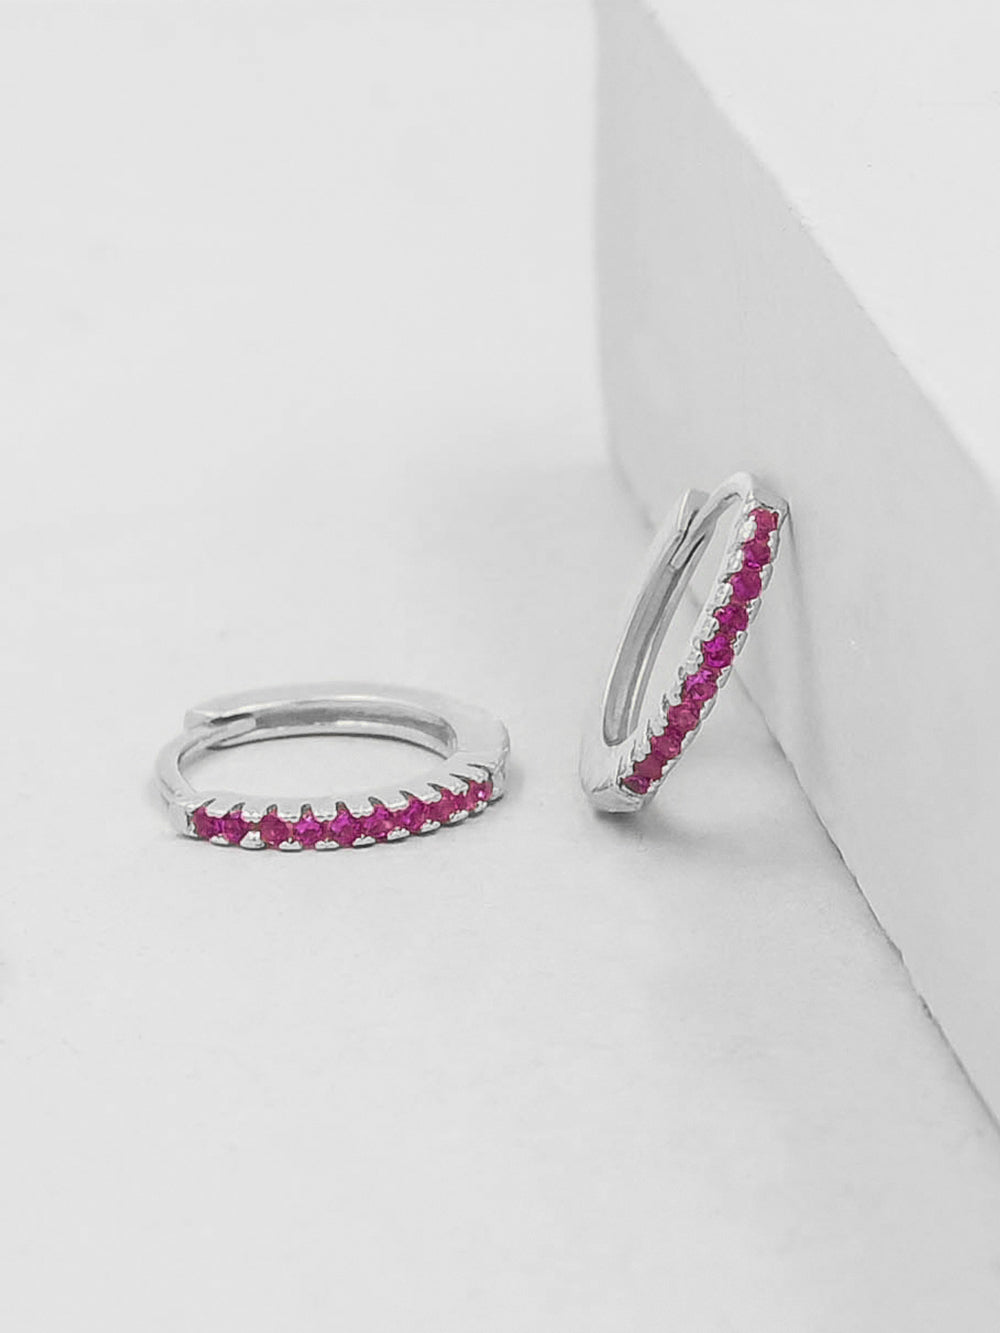 Rhodium Plated Super Dainty Hoop Huggie Earrings with Pink Ruby Tiny Round Cubic Zirconia by The Faint Hearted Jewelry